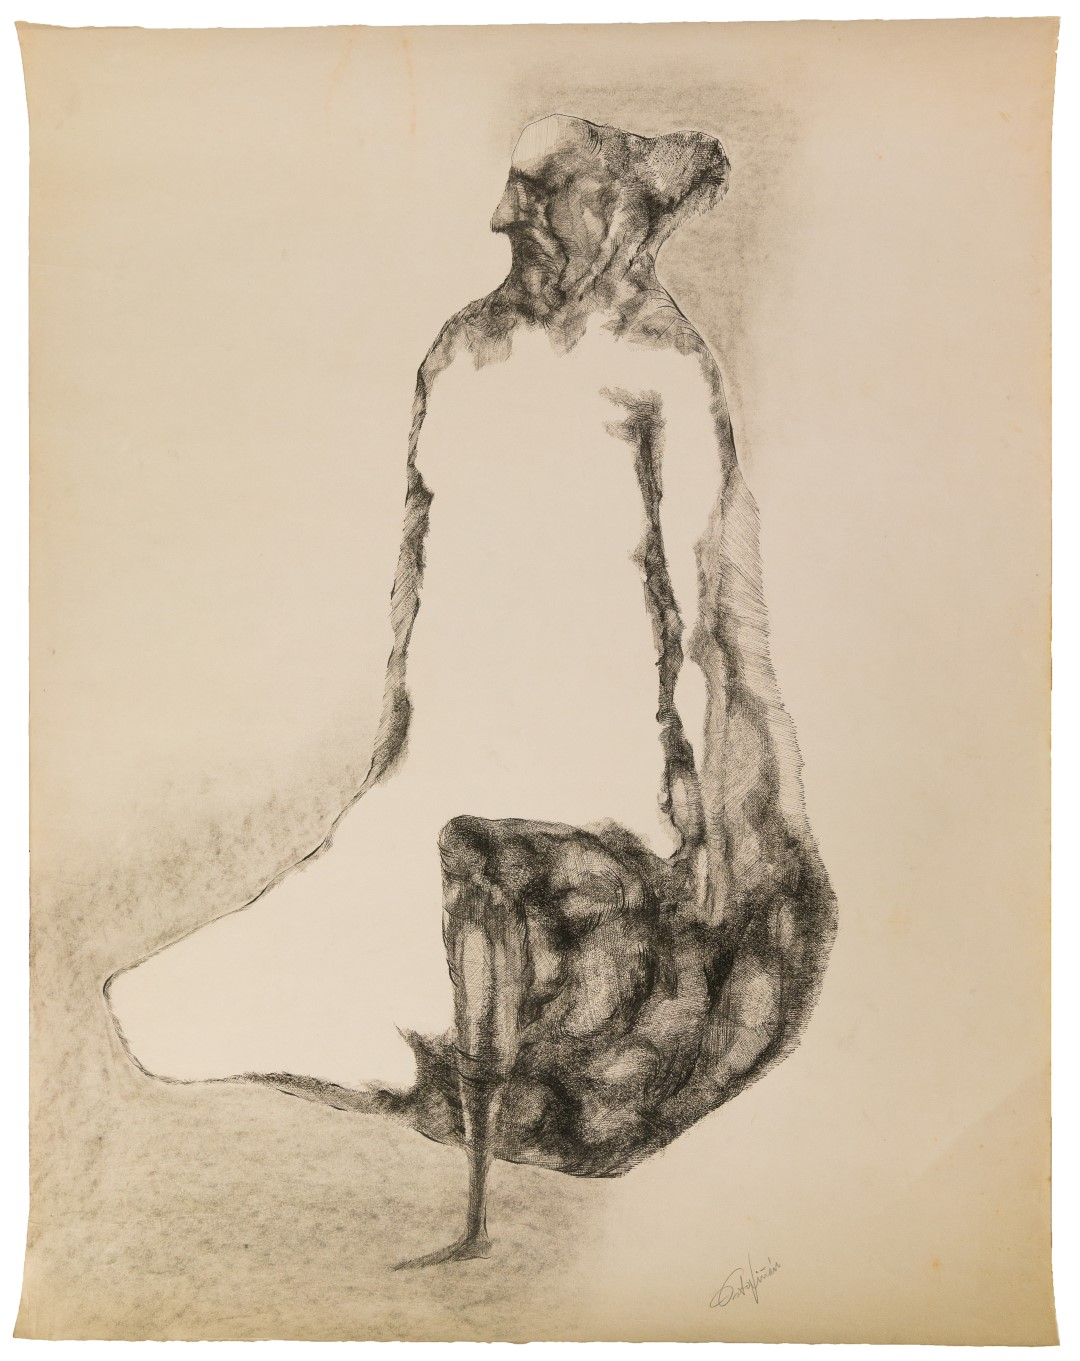 Roberto Estopiñán, Untitled (Fate), 1967, Ink and graphite on paper, Gift of Carmina Benguria in memory of the artist, Polk Museum of Art Permanent Collection 2017.2.7